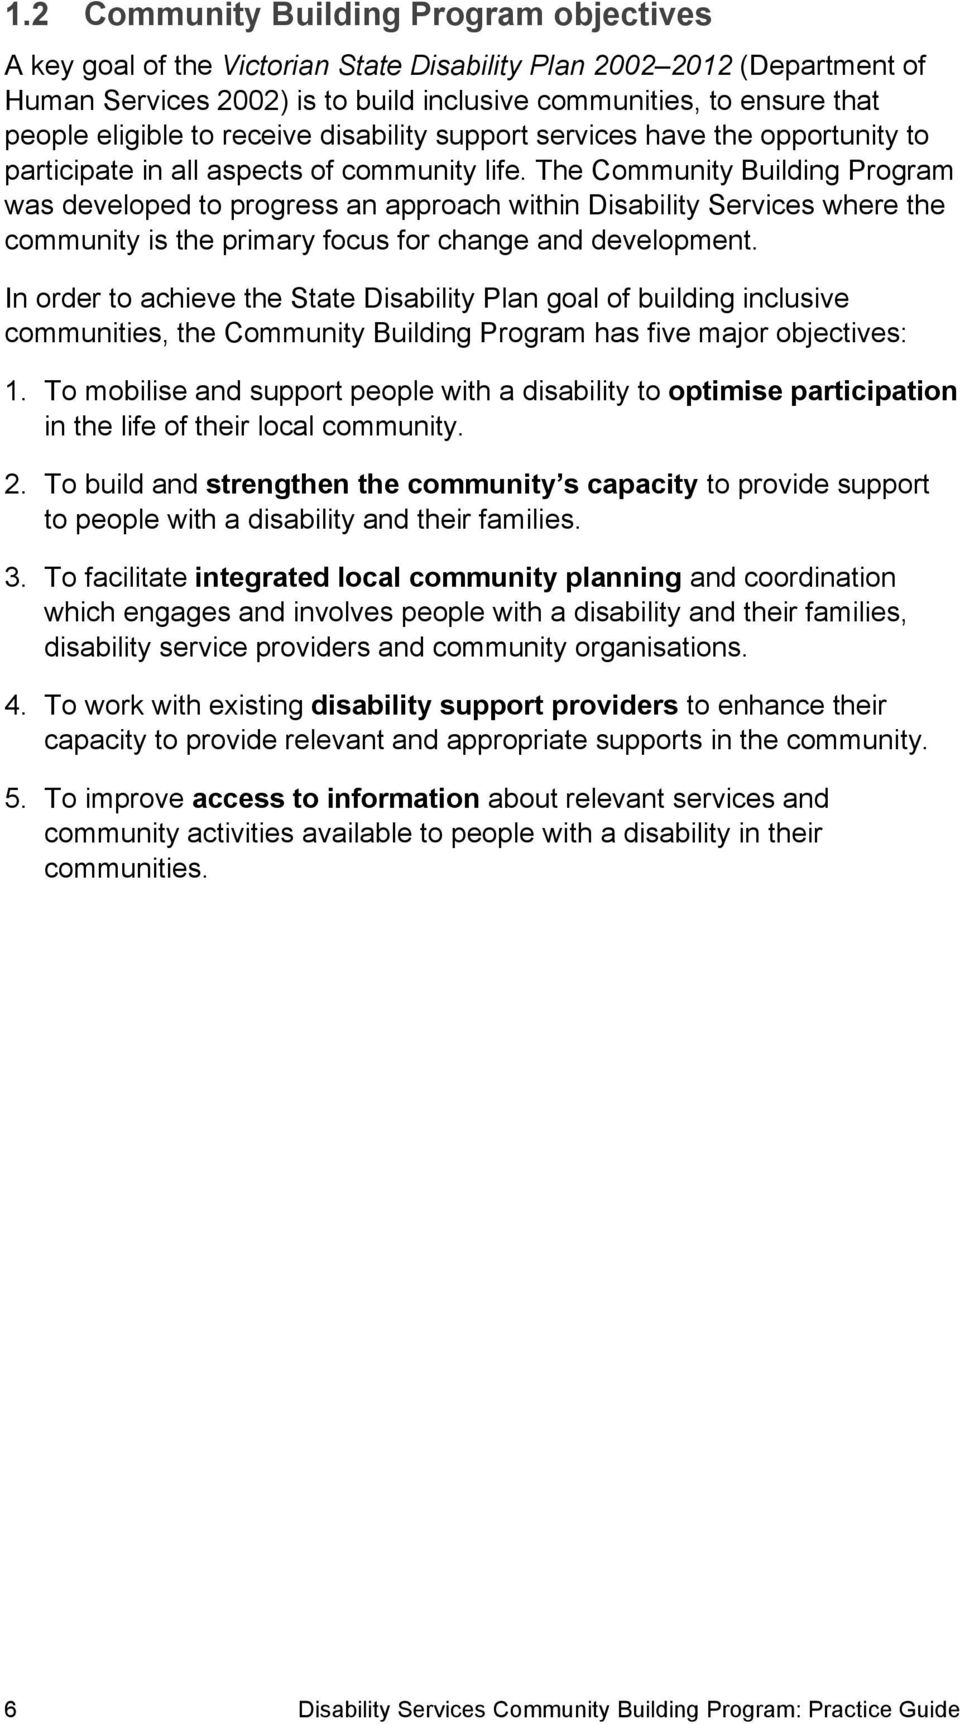 The Community Building Program was developed to progress an approach within Disability Services where the community is the primary focus for change and development.